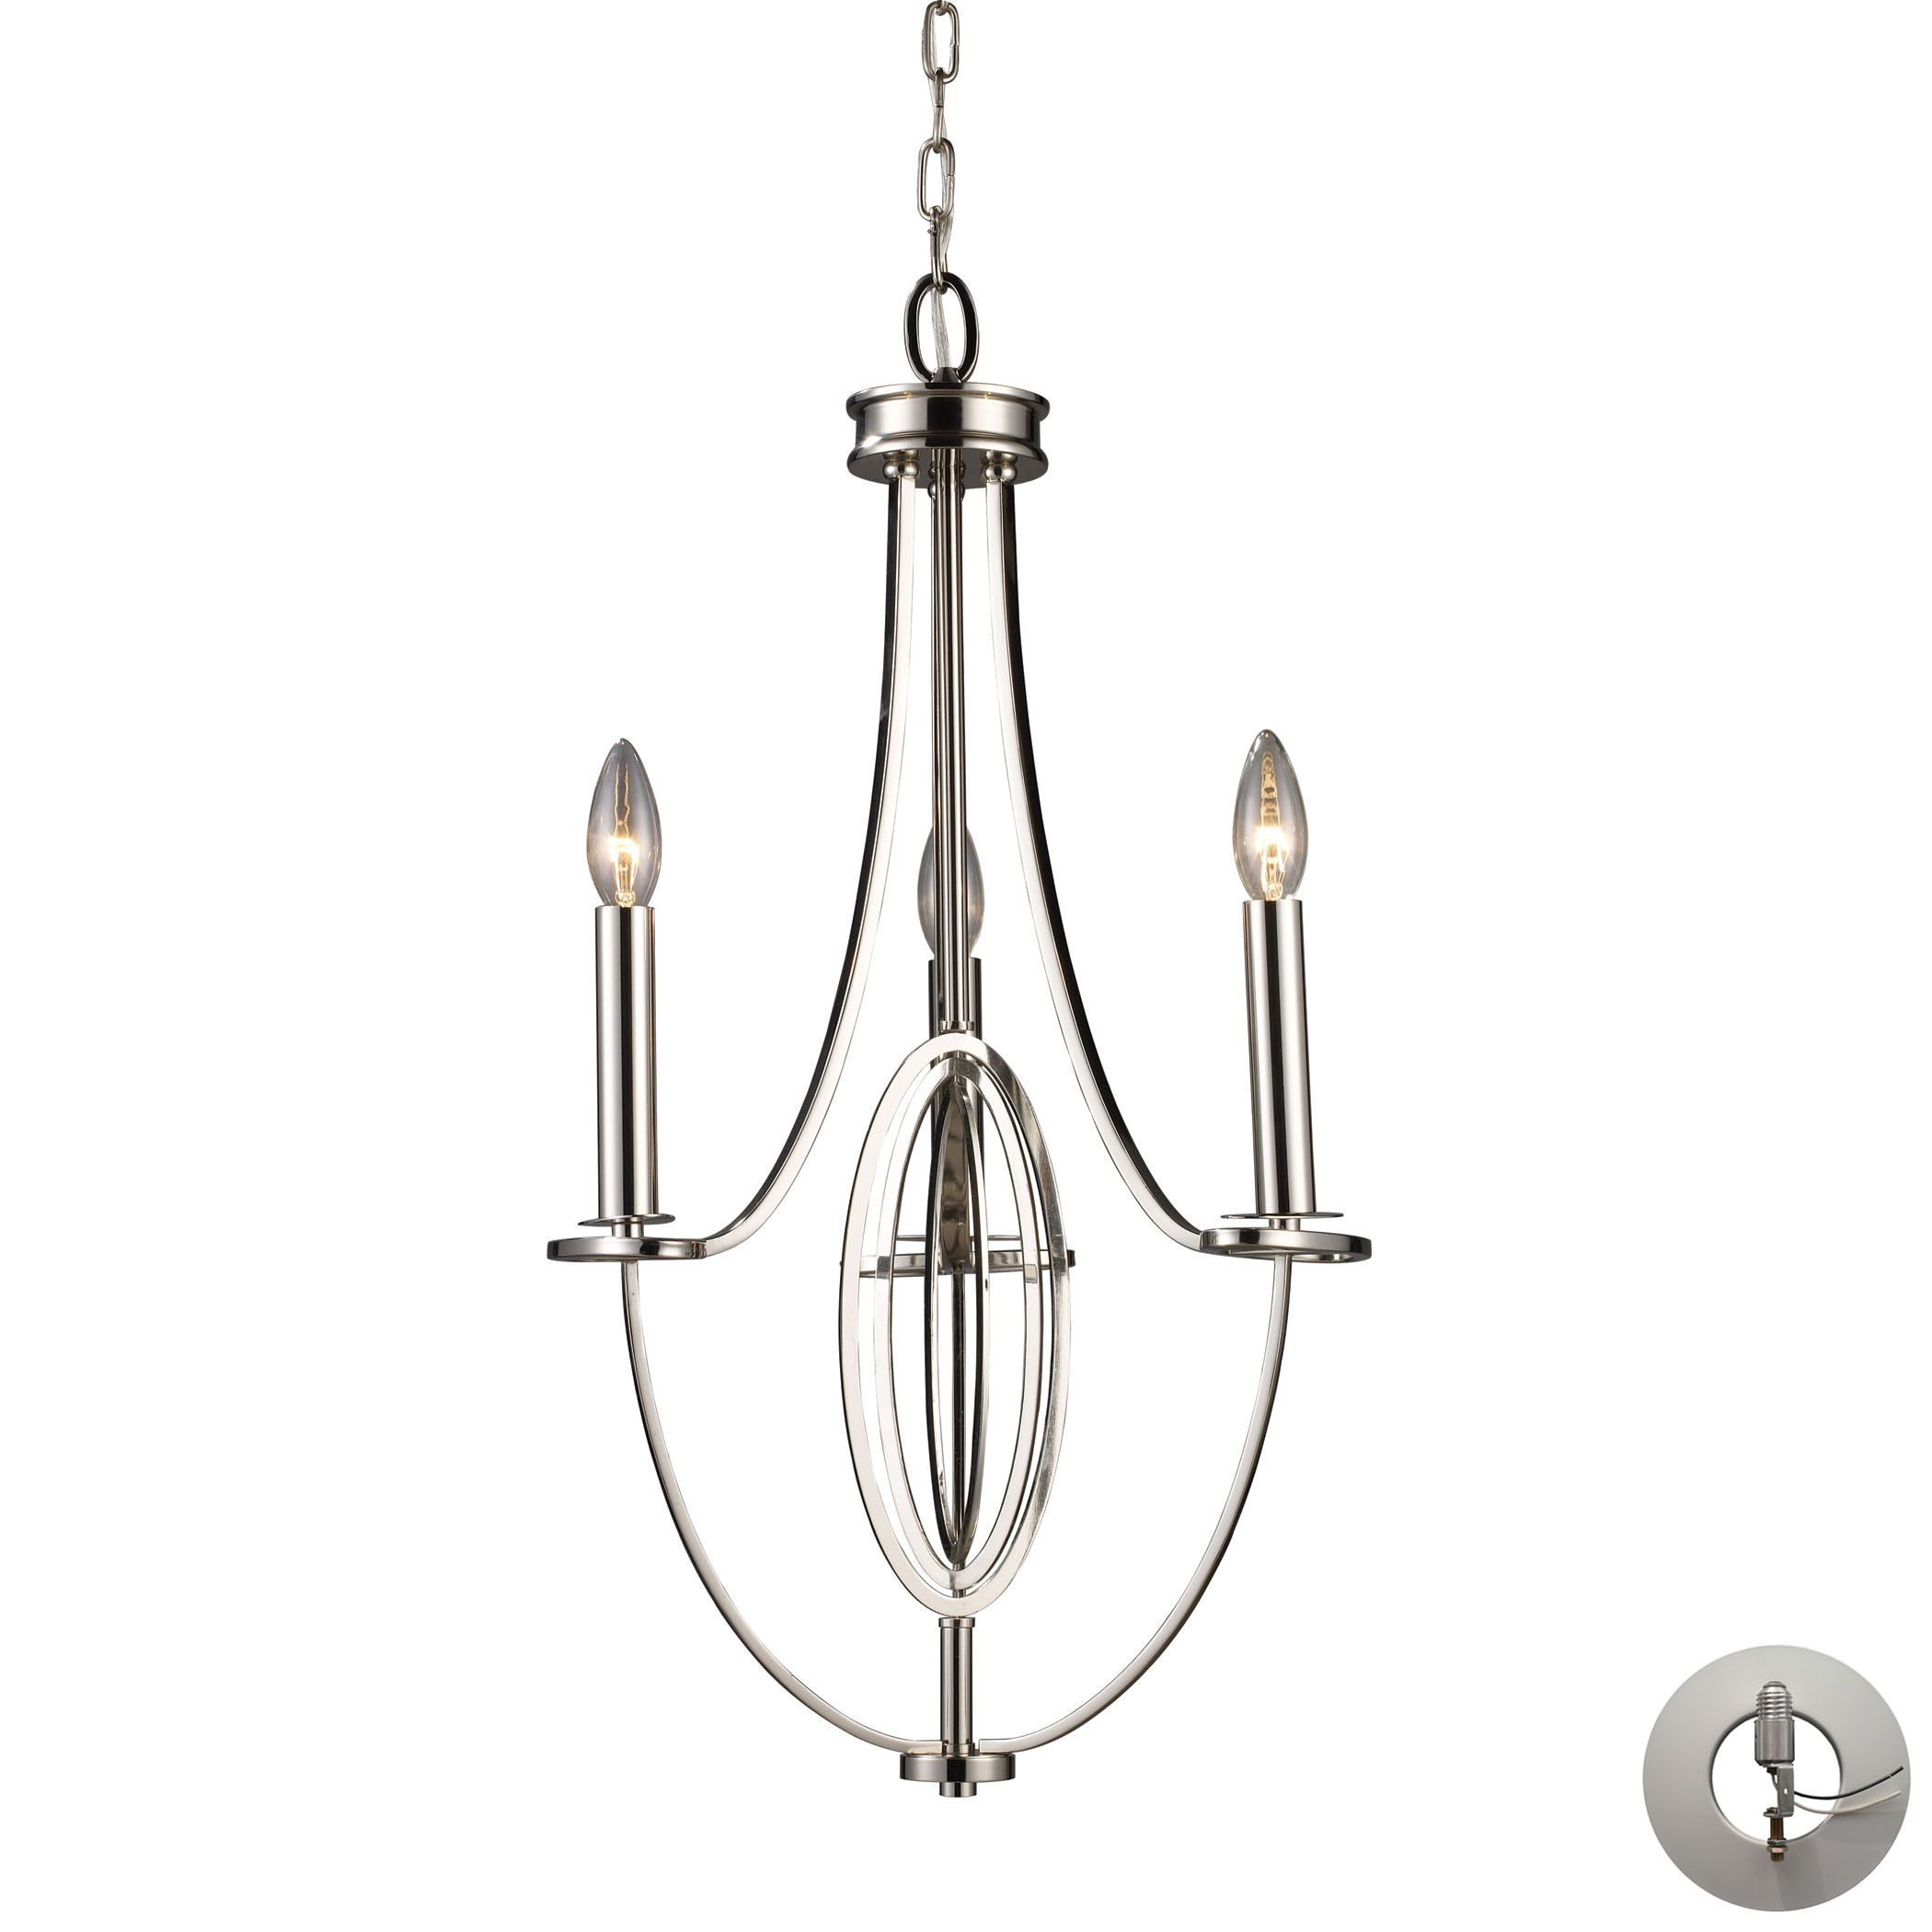 Dione 3 light chandelier in polished nickel includes recessed dione 3 light chandelier in polished nickel includes recessed lighting kit arubaitofo Images